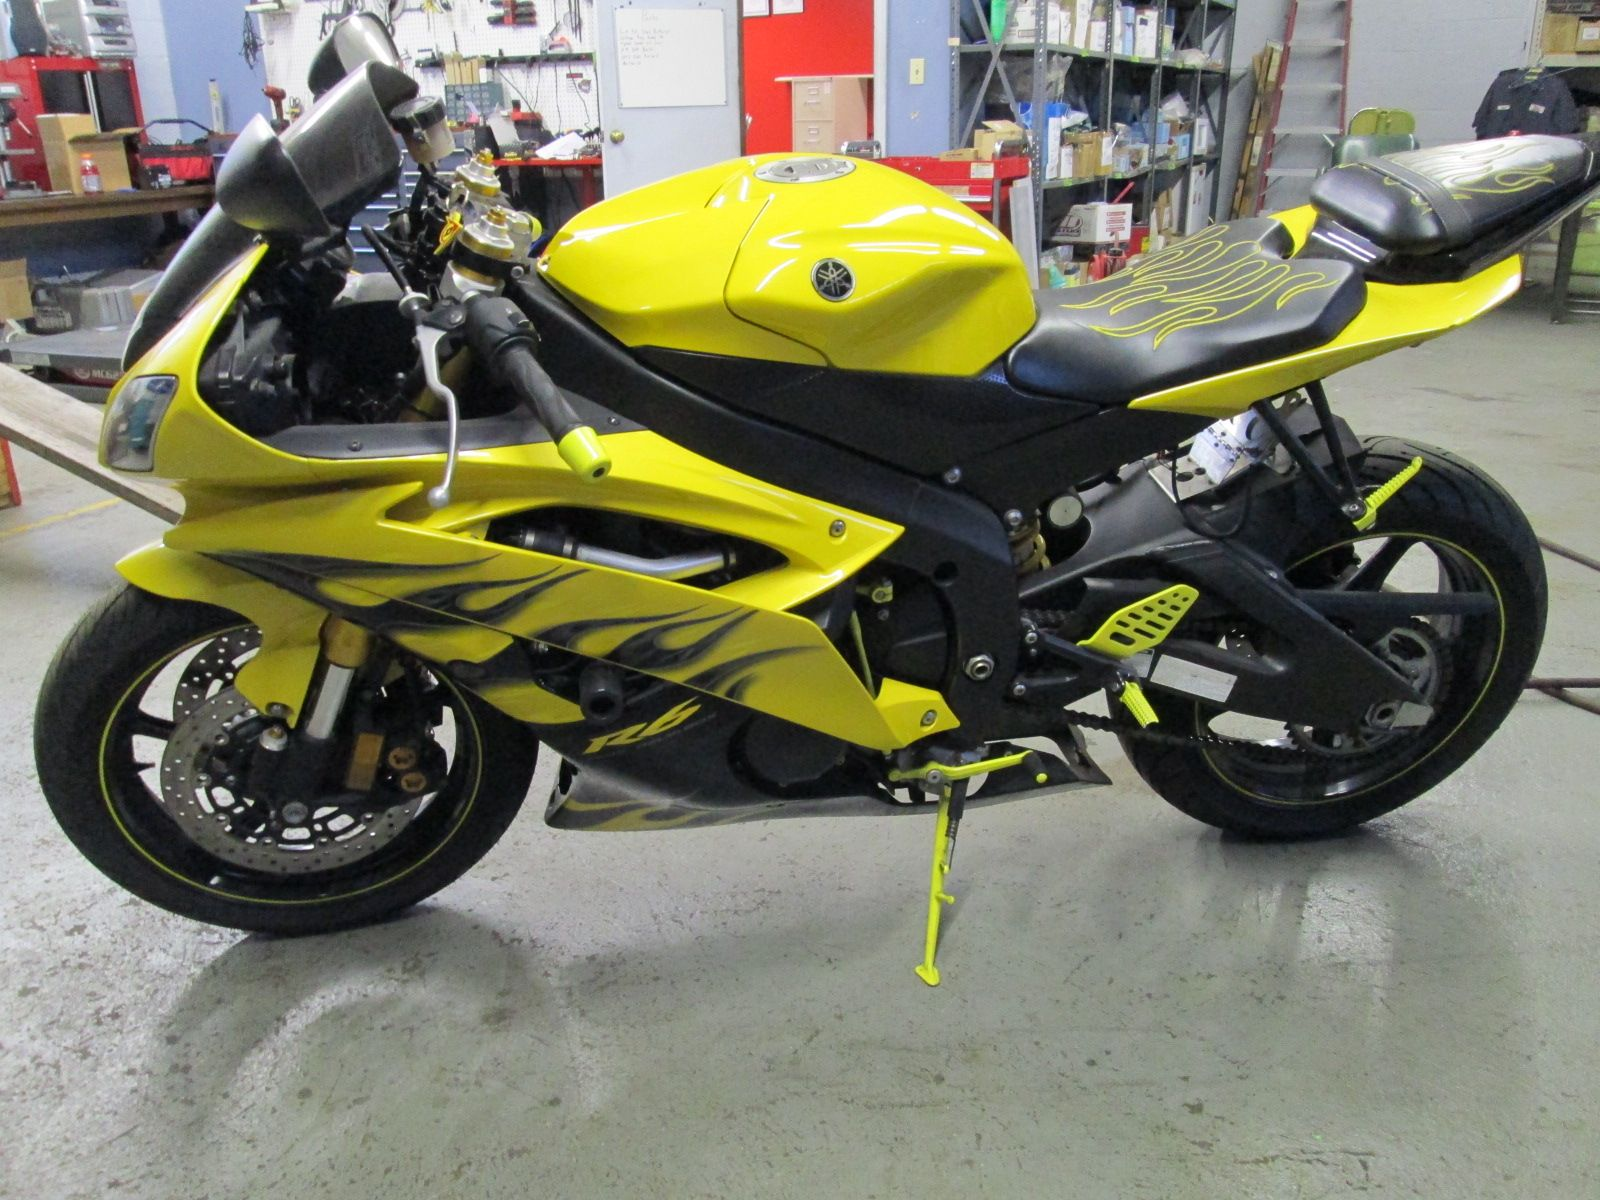 For Sale 2008 Yamaha Yzf R6 Limited Edition One Of Only 2500